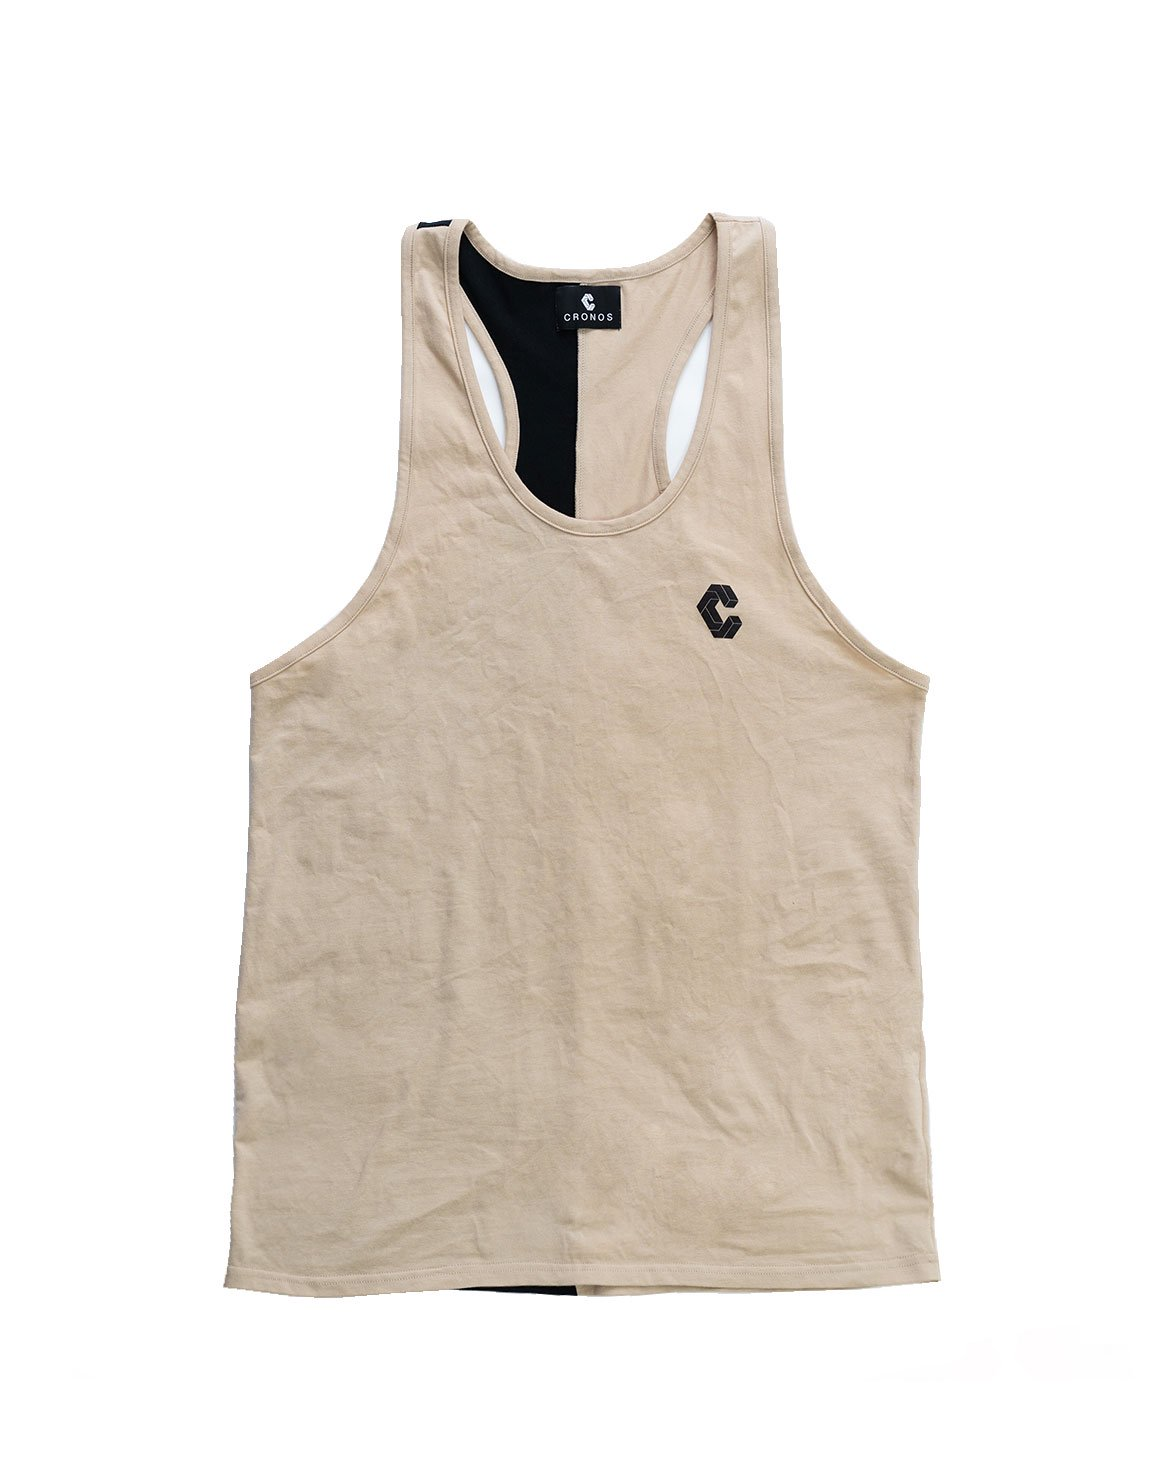 <img class='new_mark_img1' src='https://img.shop-pro.jp/img/new/icons1.gif' style='border:none;display:inline;margin:0px;padding:0px;width:auto;' />CRONOS BACK TWOLINE TANKTOP BEIGE